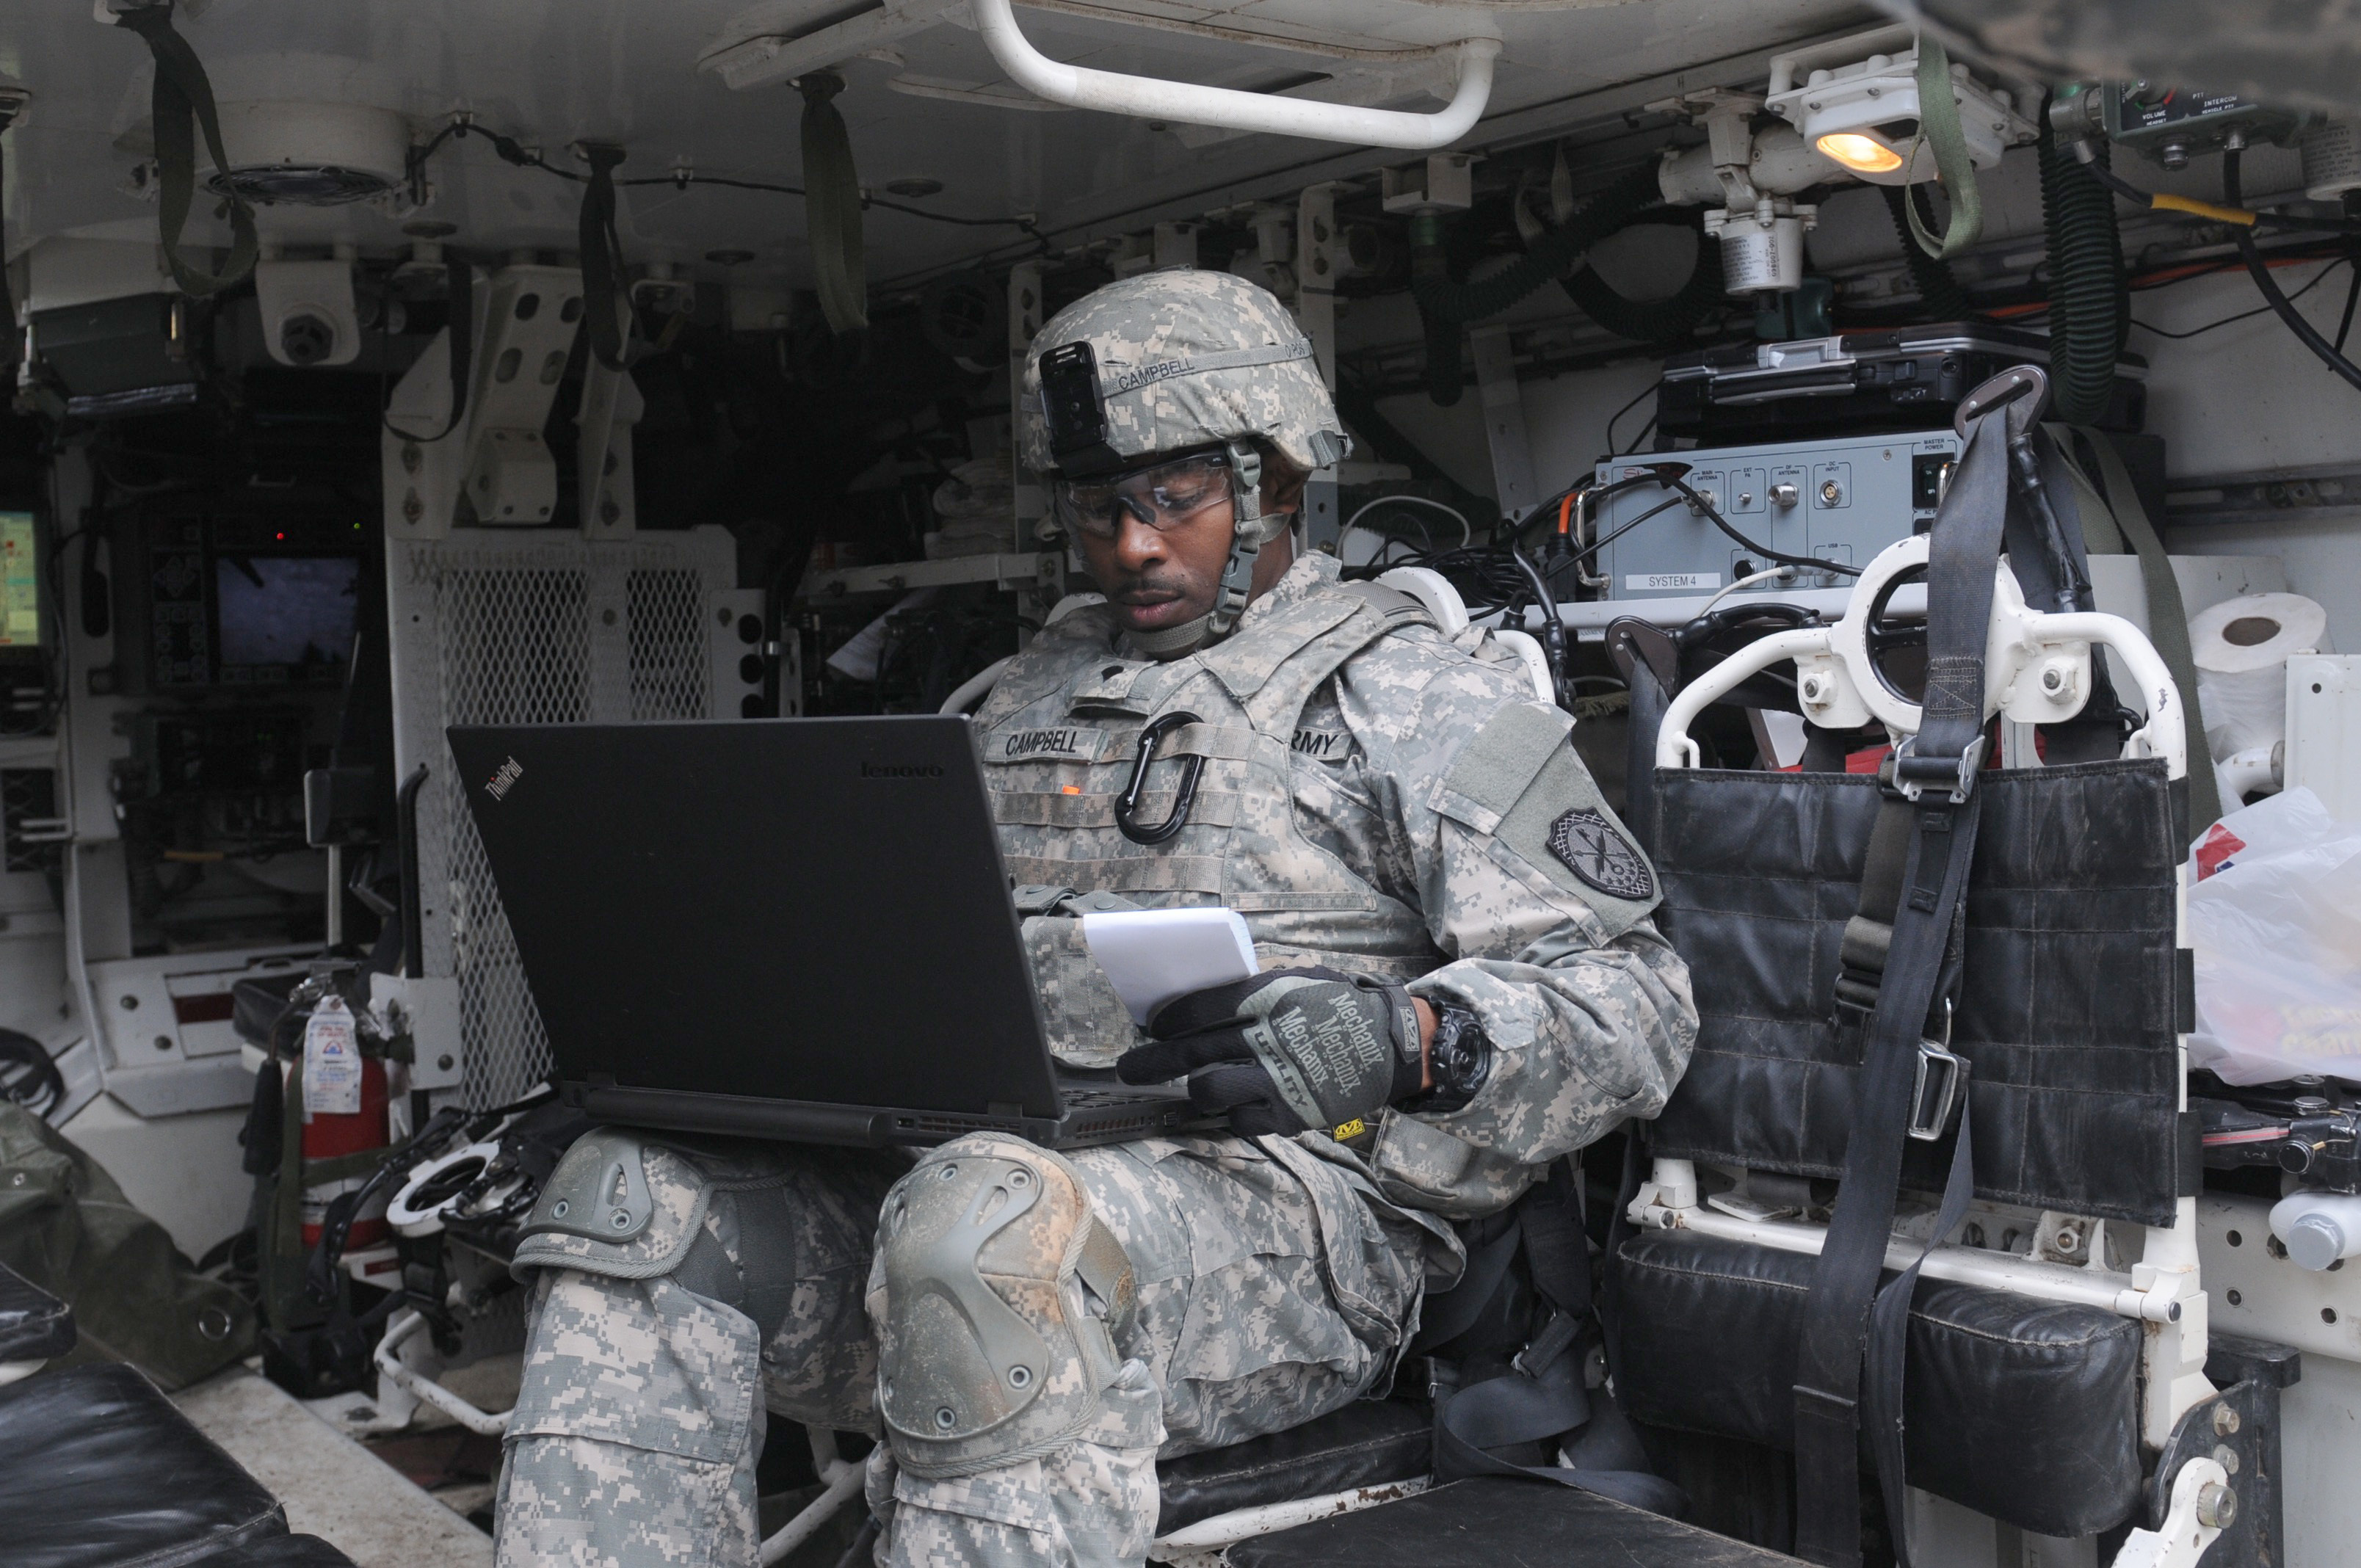 A Cyber Soldier assigned to the 780th Military Intelligence Brigade prepares his equipment inside a Stryker vehicle during an integrated cyber exercise at Joint Base Lewis-McChord (Capt. Meredith Mathis/Army).